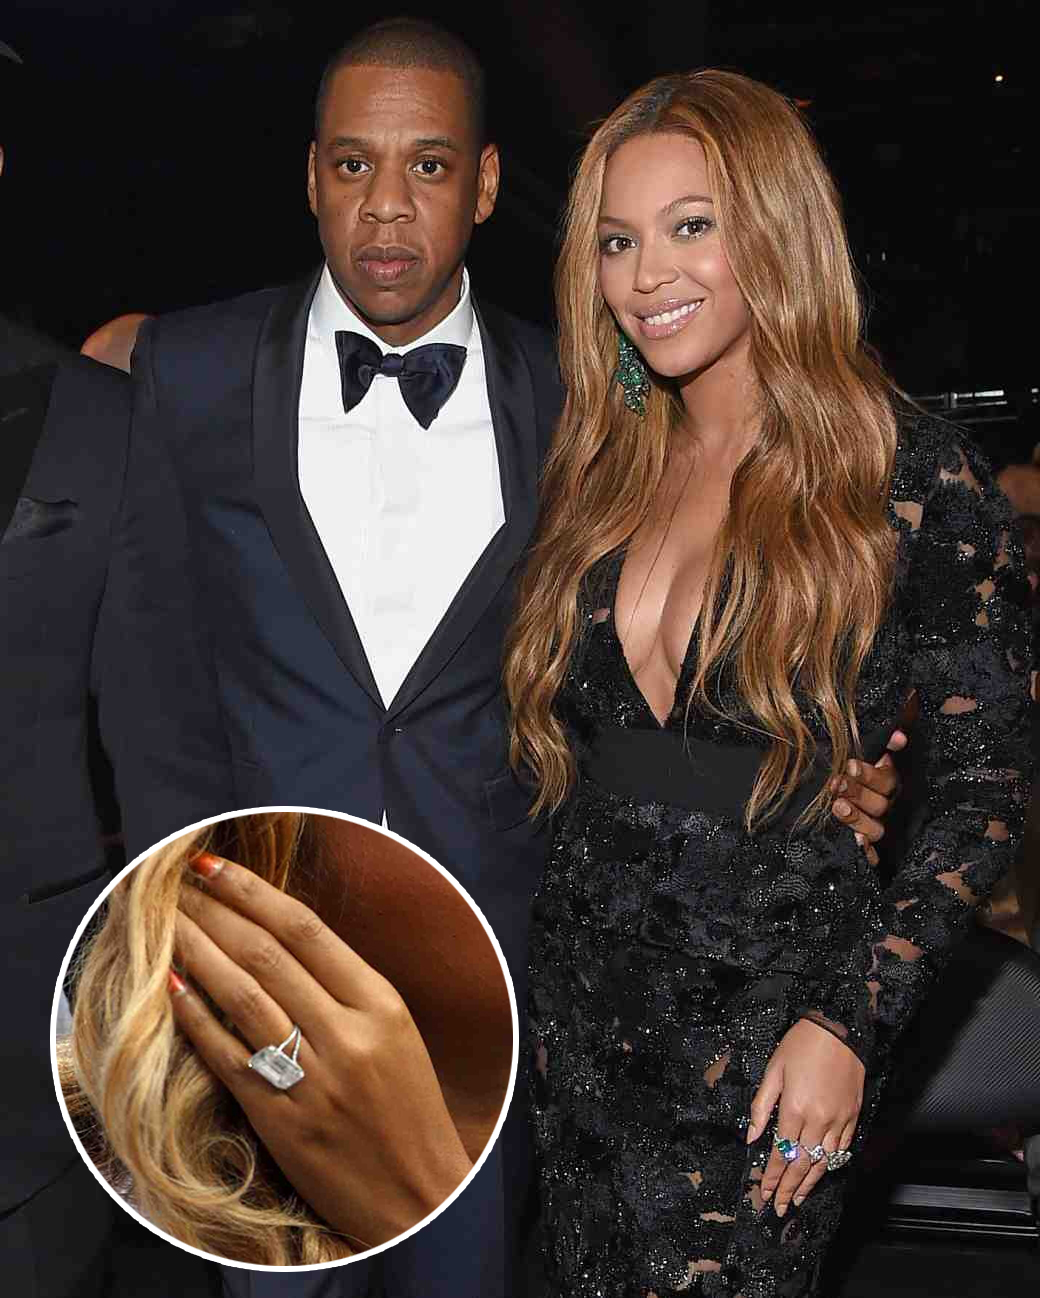 beyonce-knowles-ring-inset-0316.jpg